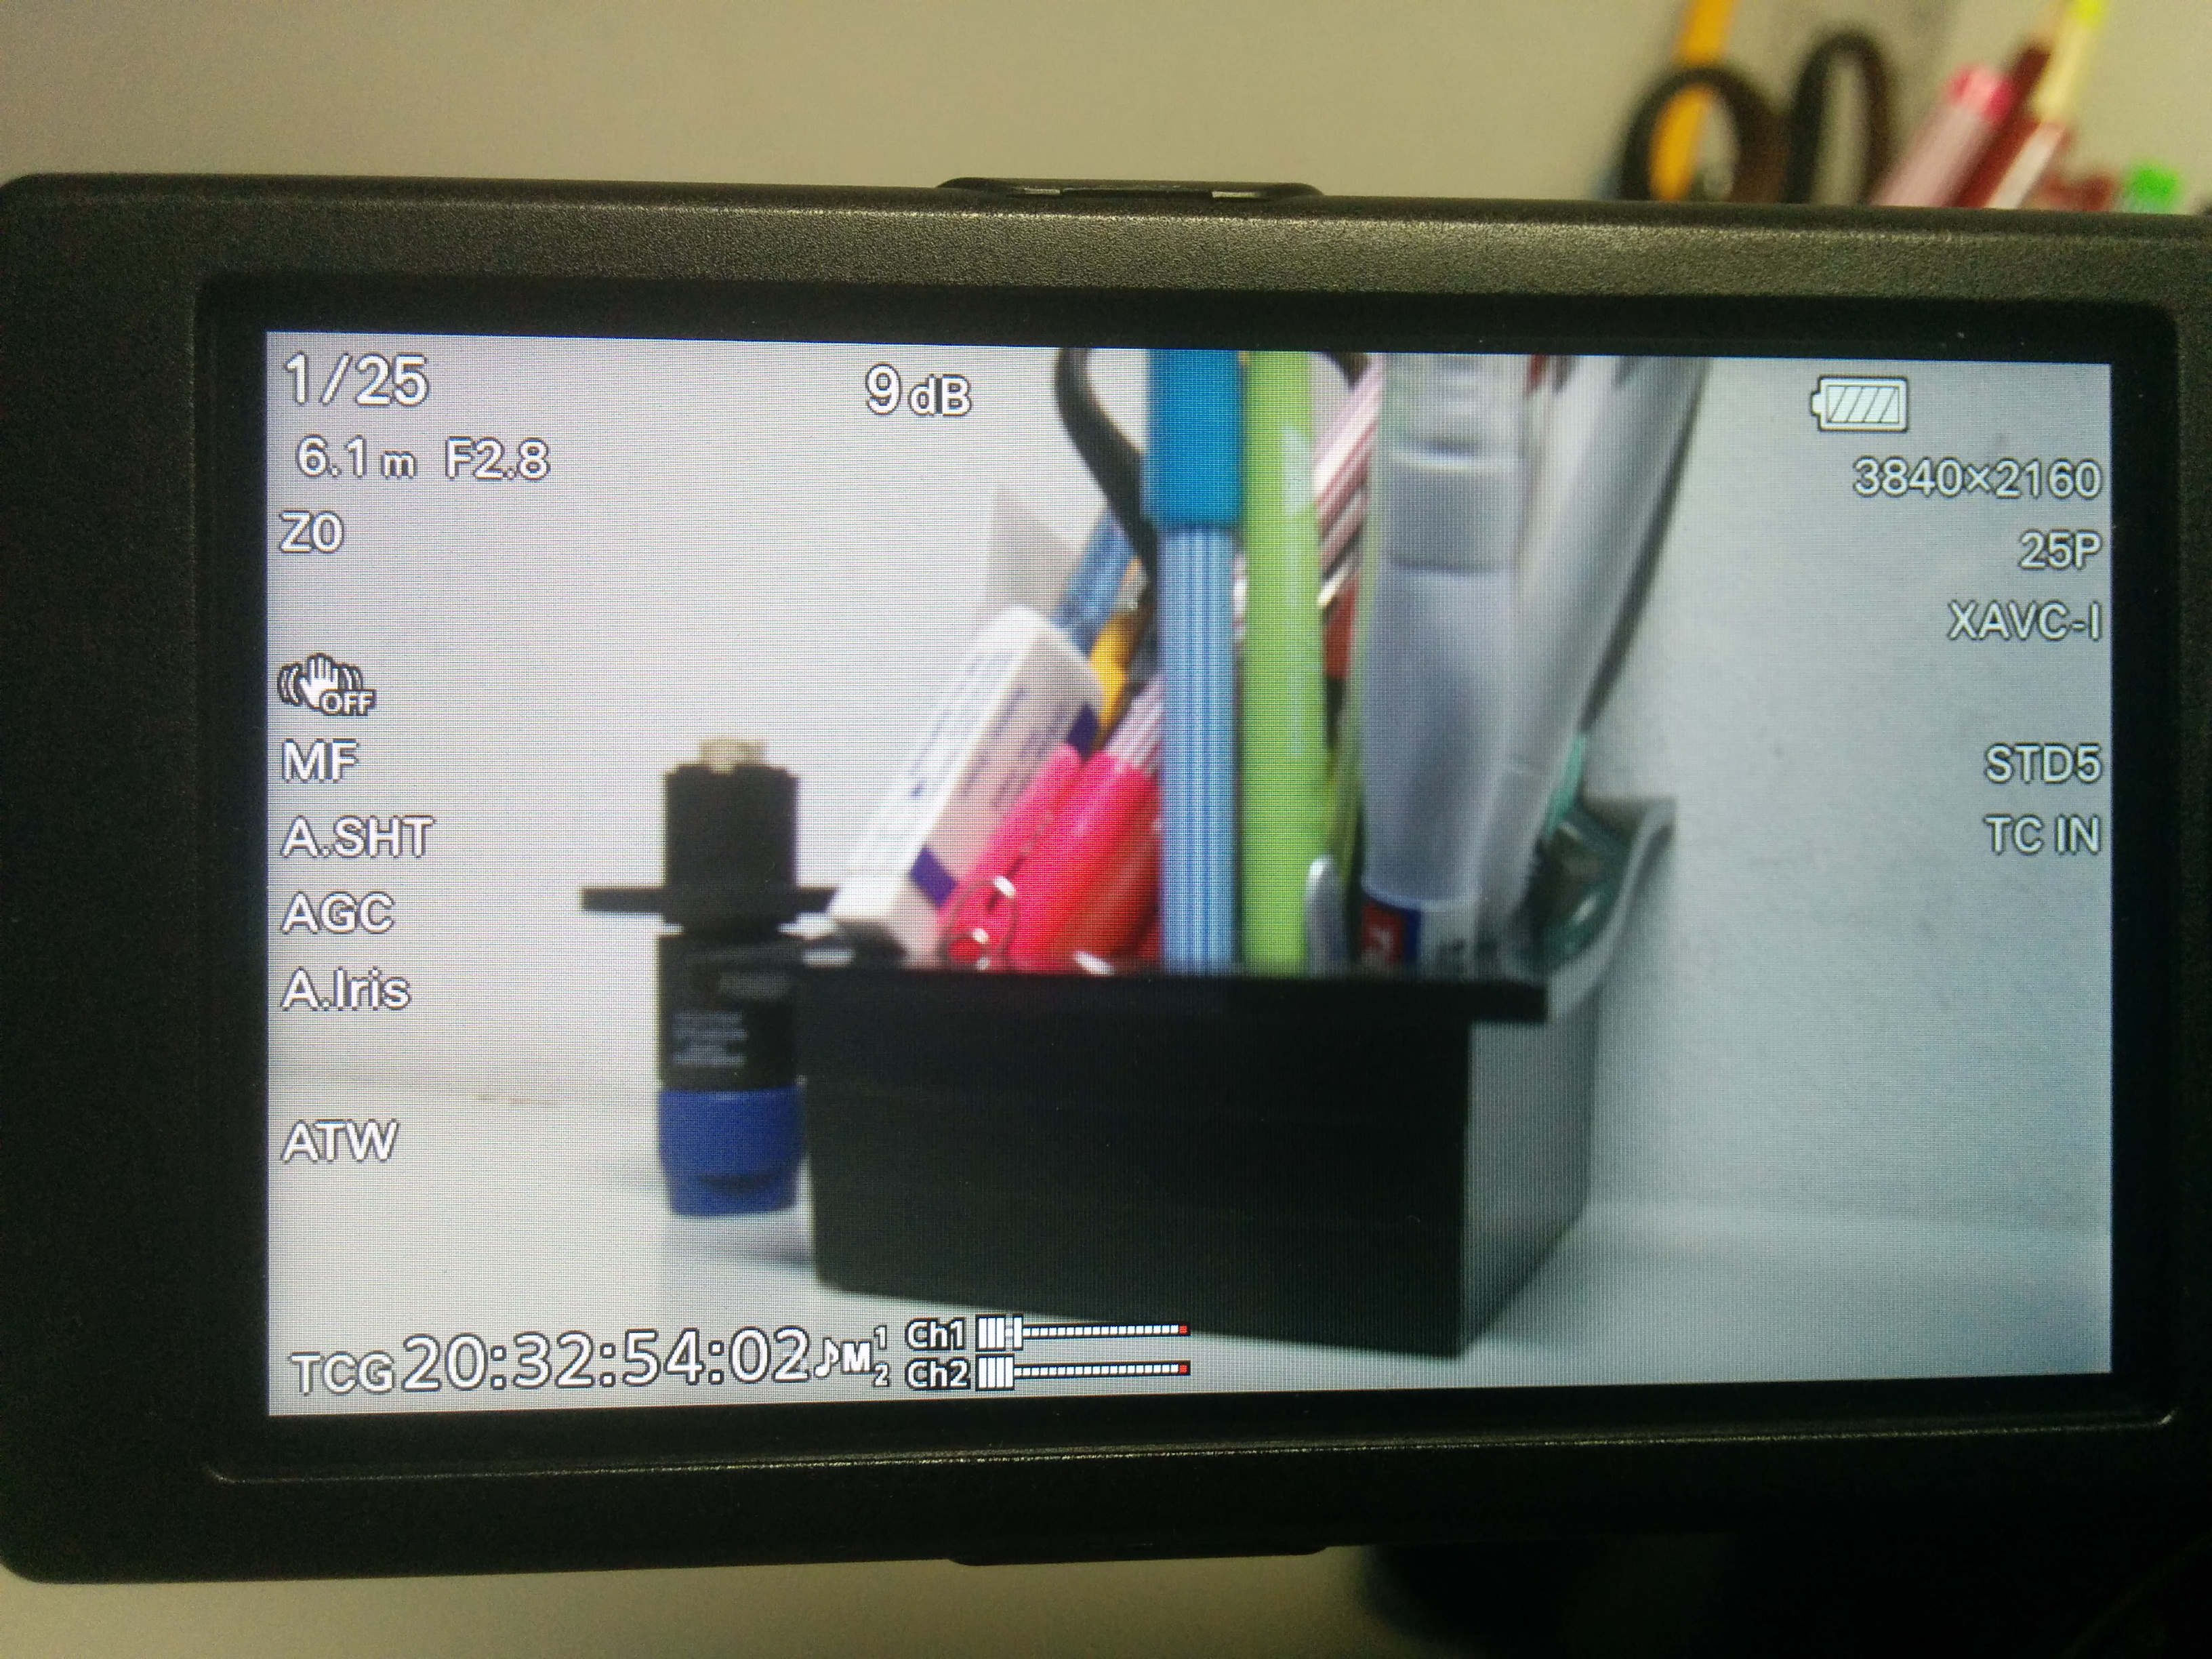 PXW-Z100 Viewfinder TC IN